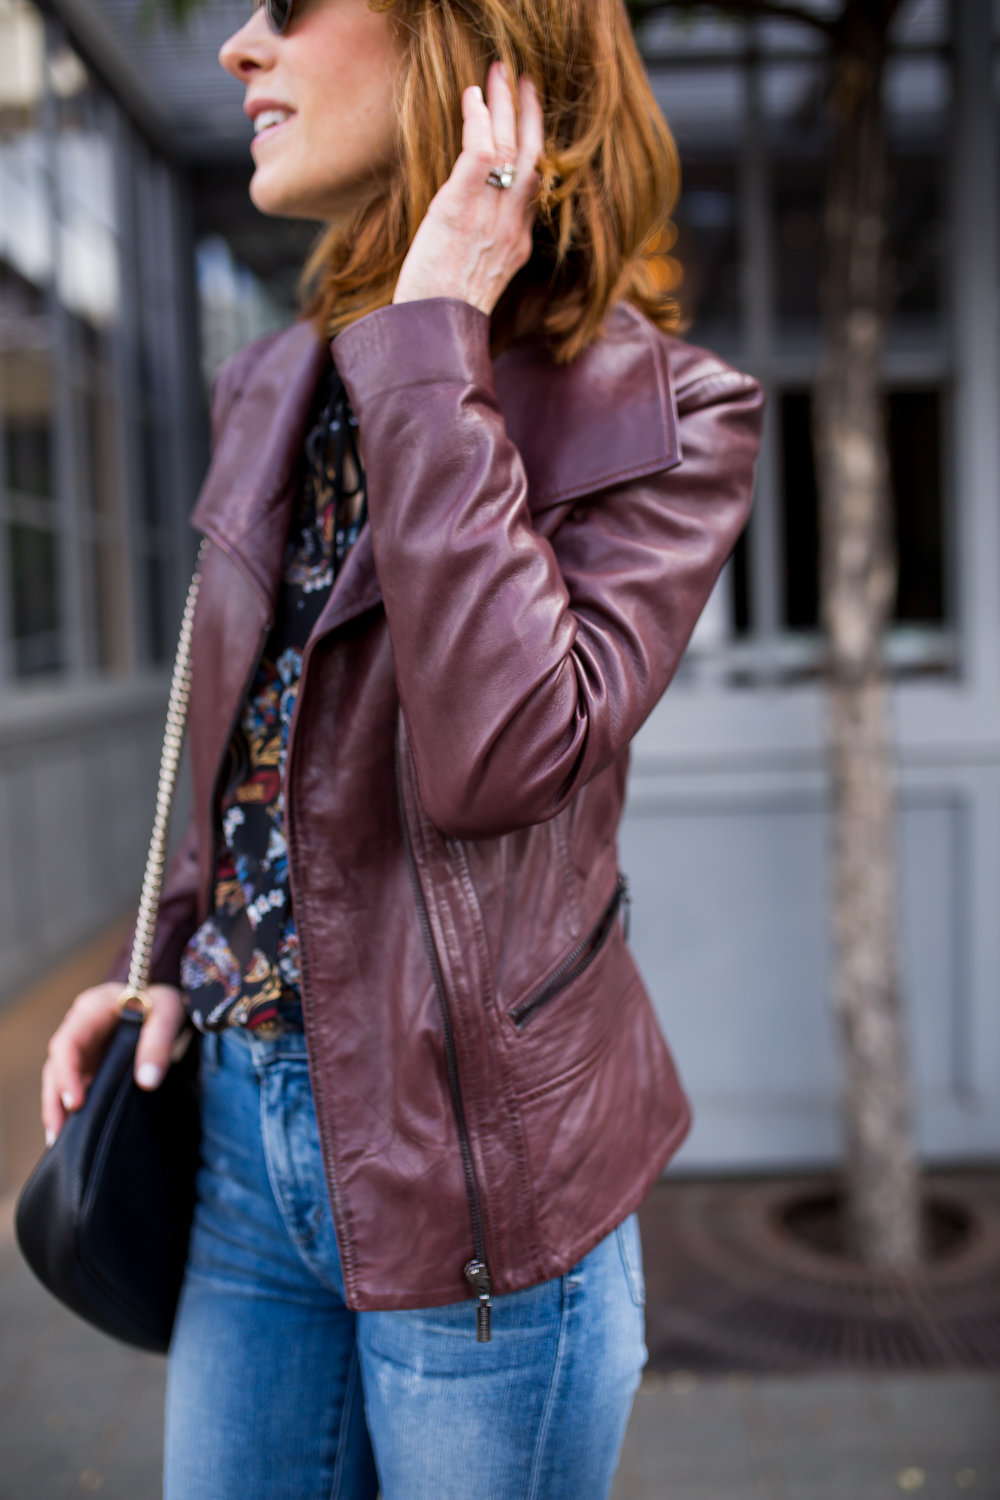 BERNARD LEATHER JACKET- NATURALIZER SUEDE BOOTIES- DALLAS FASHION BLOGGER